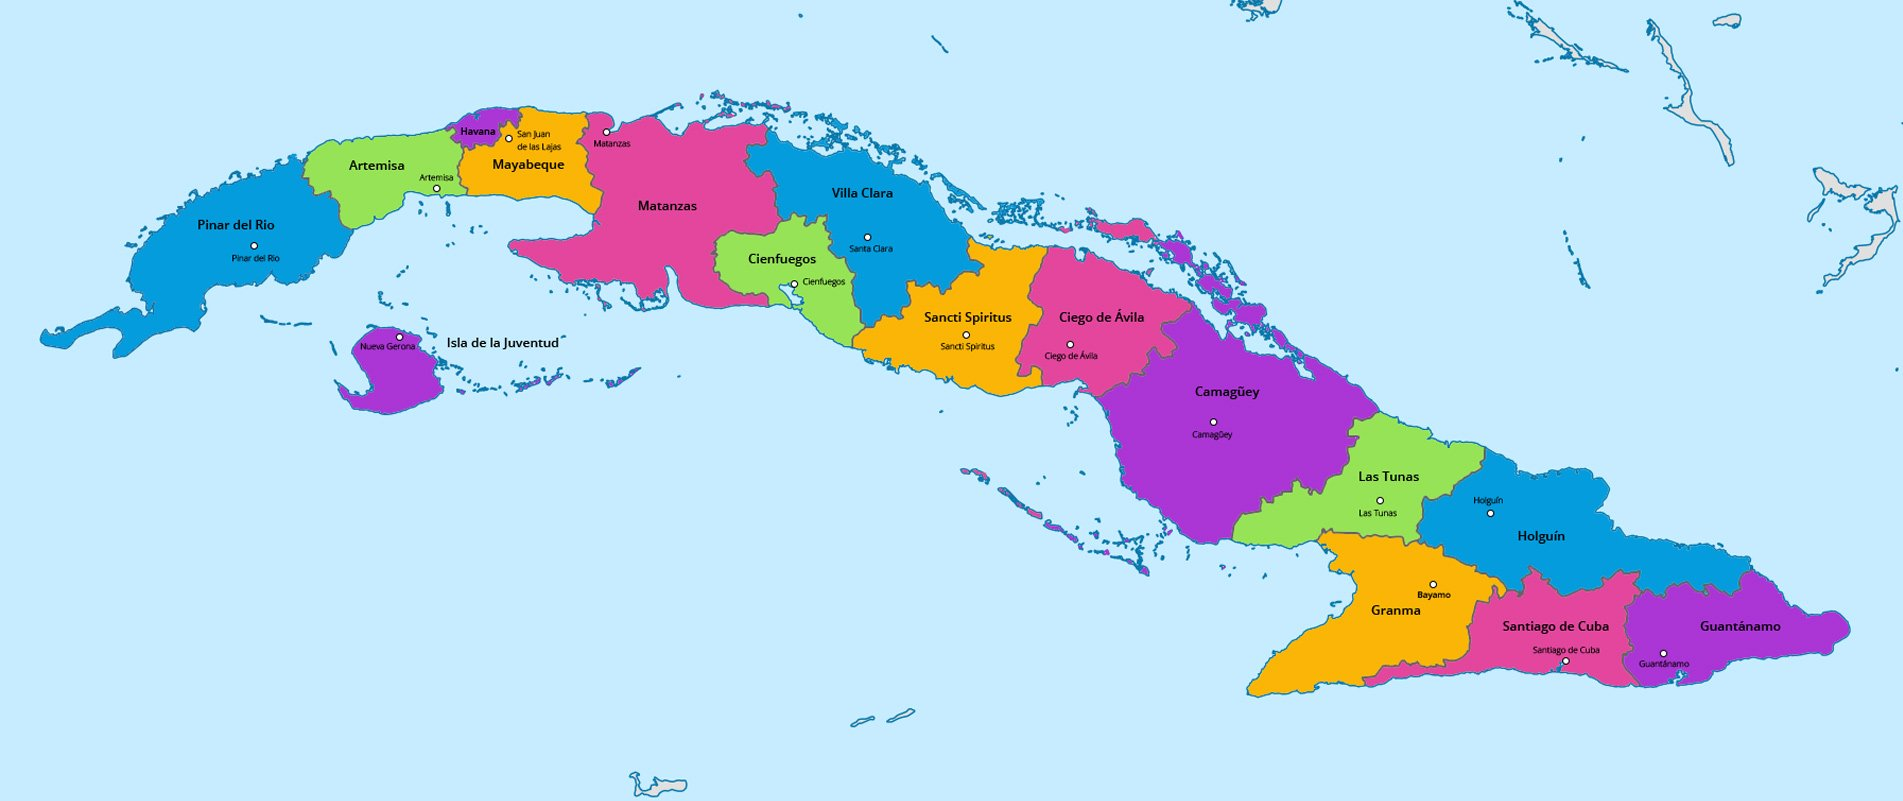 Map of the provinces in Cuba